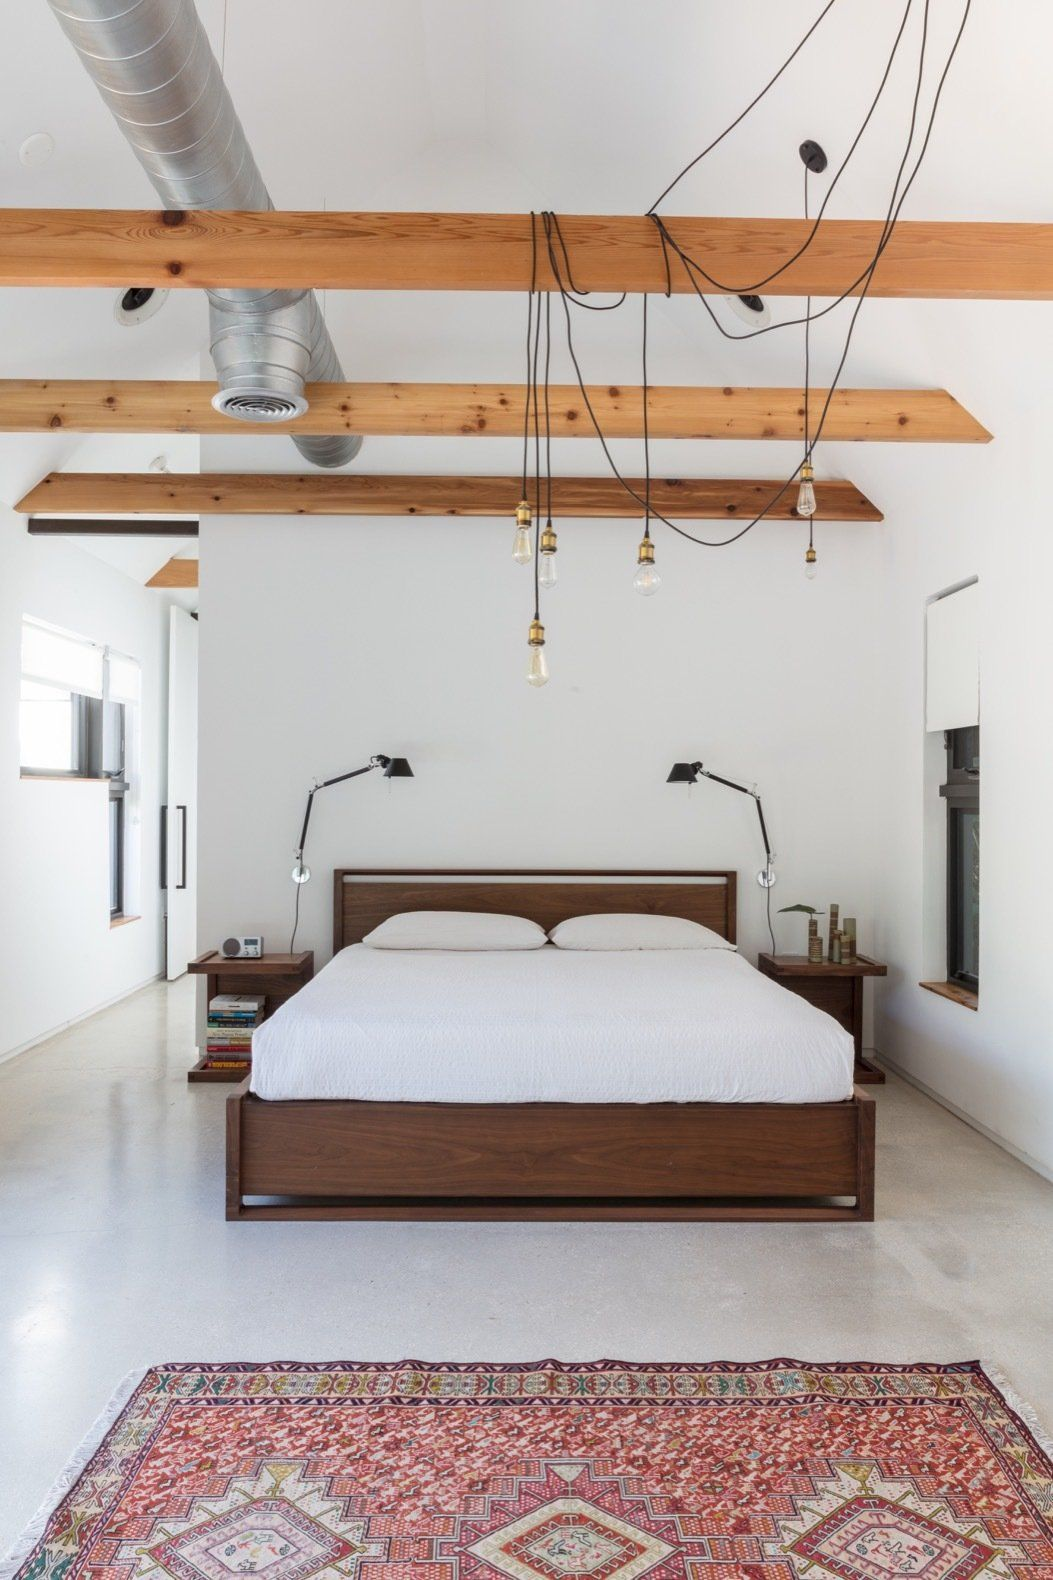 Attractive Bedroom, Bed, Night Stands, Table Lighting, Recessed Lighting, Accent  Lighting, And Concrete Floor Natural Light Fills Every Room Of The Bright  And Airy ...